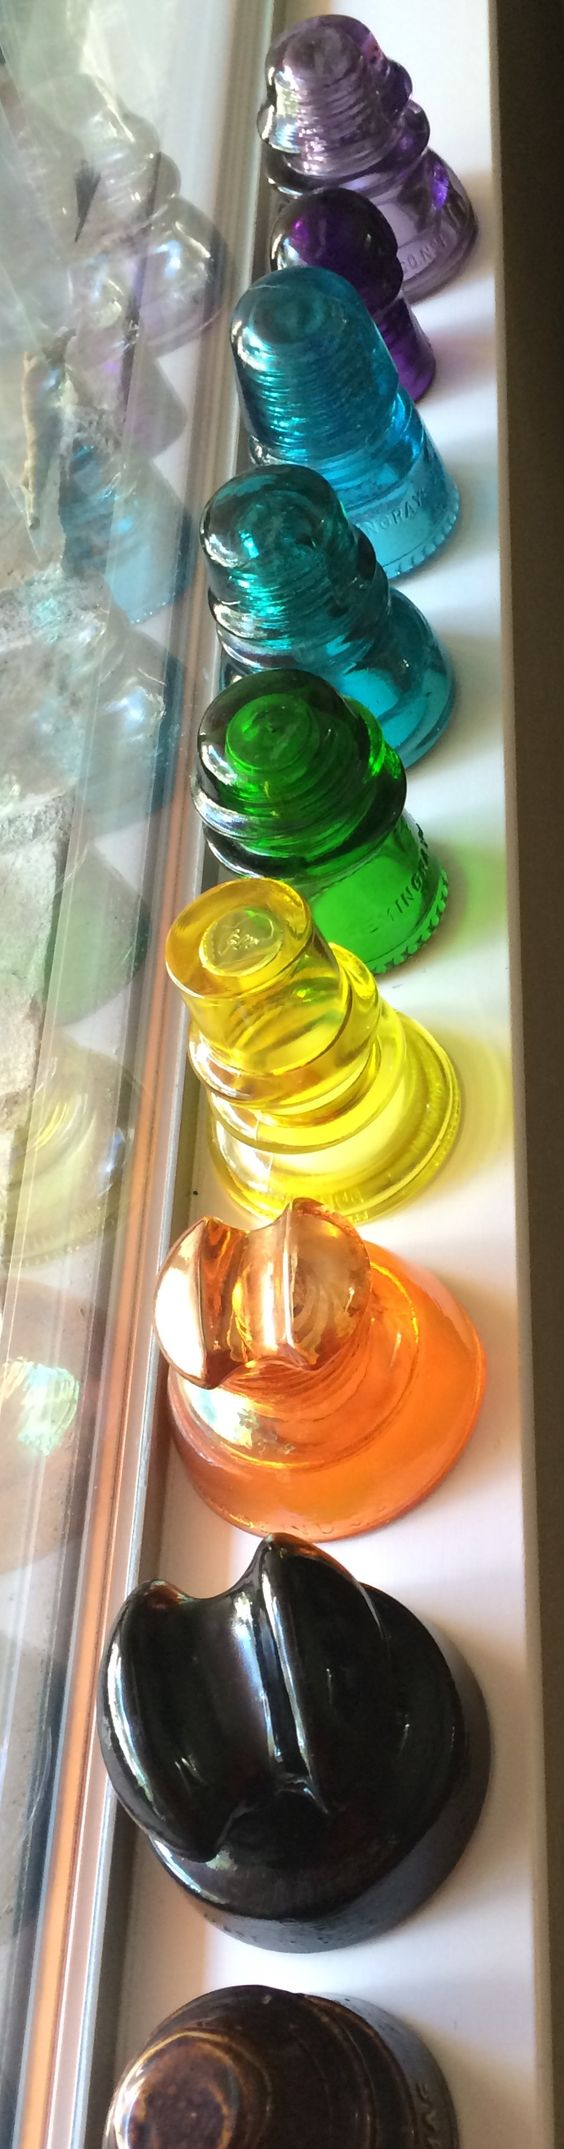 Girly girl collection glass insulators from 1800 1900 39 s for Glass power line insulators